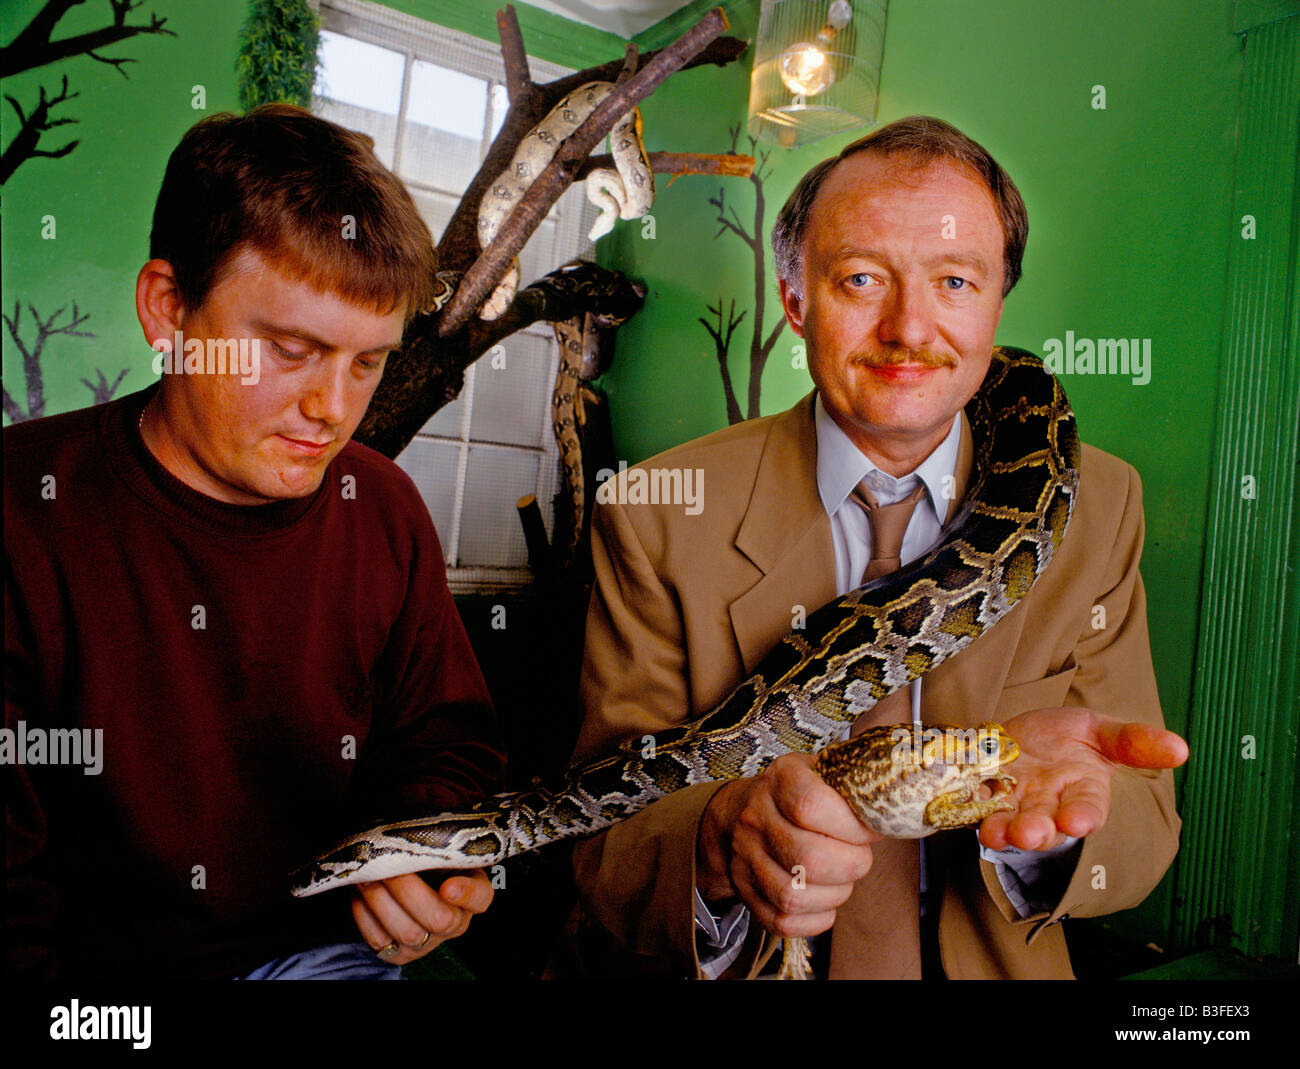 KEN LIVINGSTONE, FORMER MAYOR OF LONDON WITH HIS HOBBY COLLECTING REPTILES AND AMPHIBIANS - Stock Image